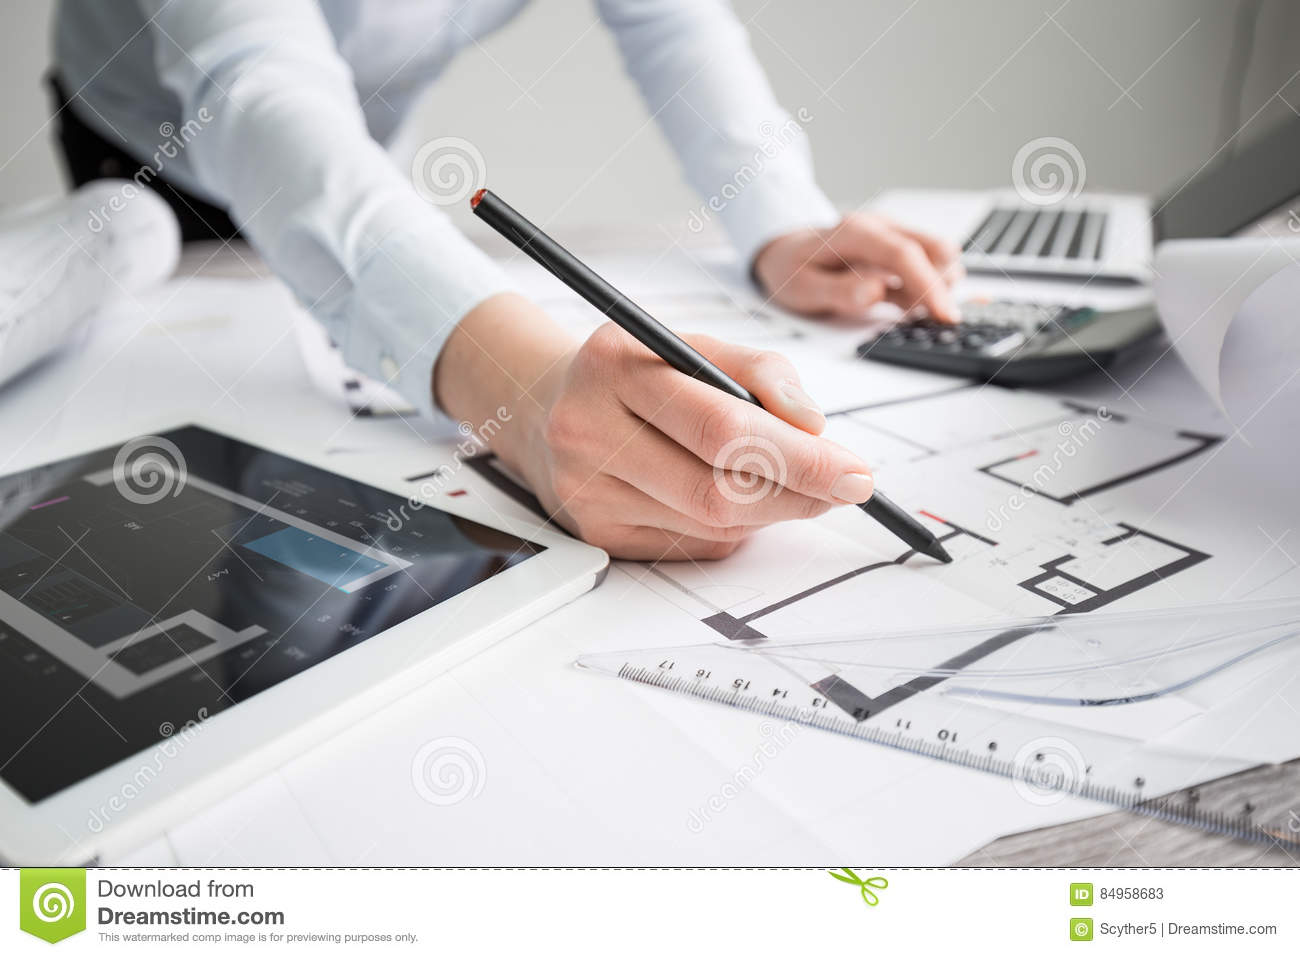 Architect architecture drawing project blueprint working design royalty free stock photo malvernweather Gallery